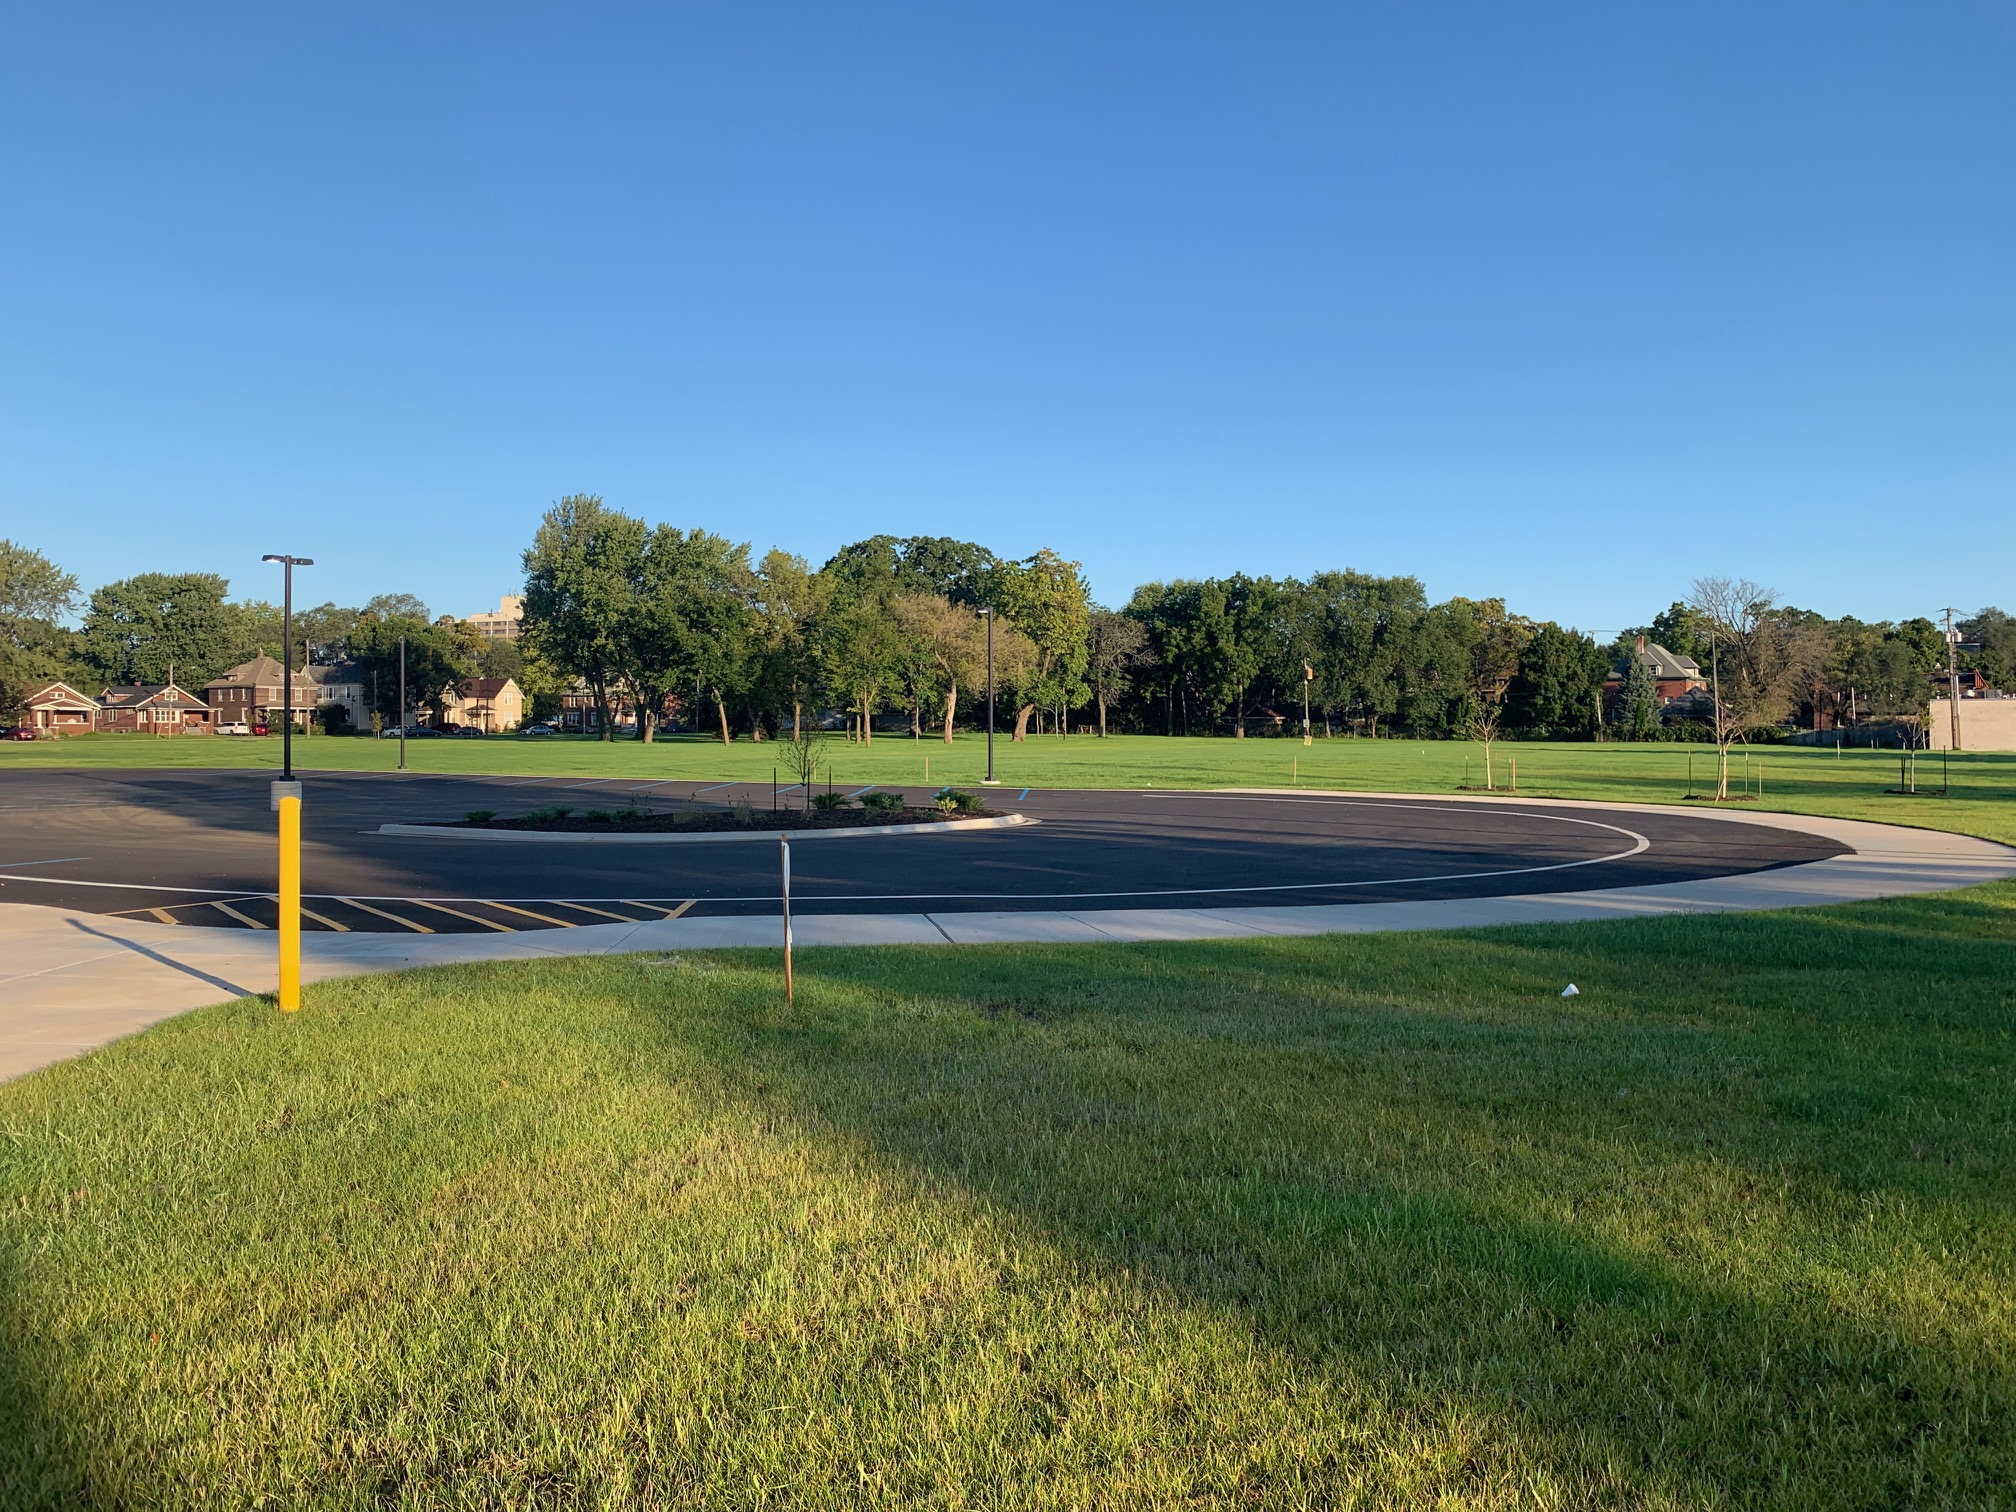 Commercial Parking: Constance Lane Elementary School